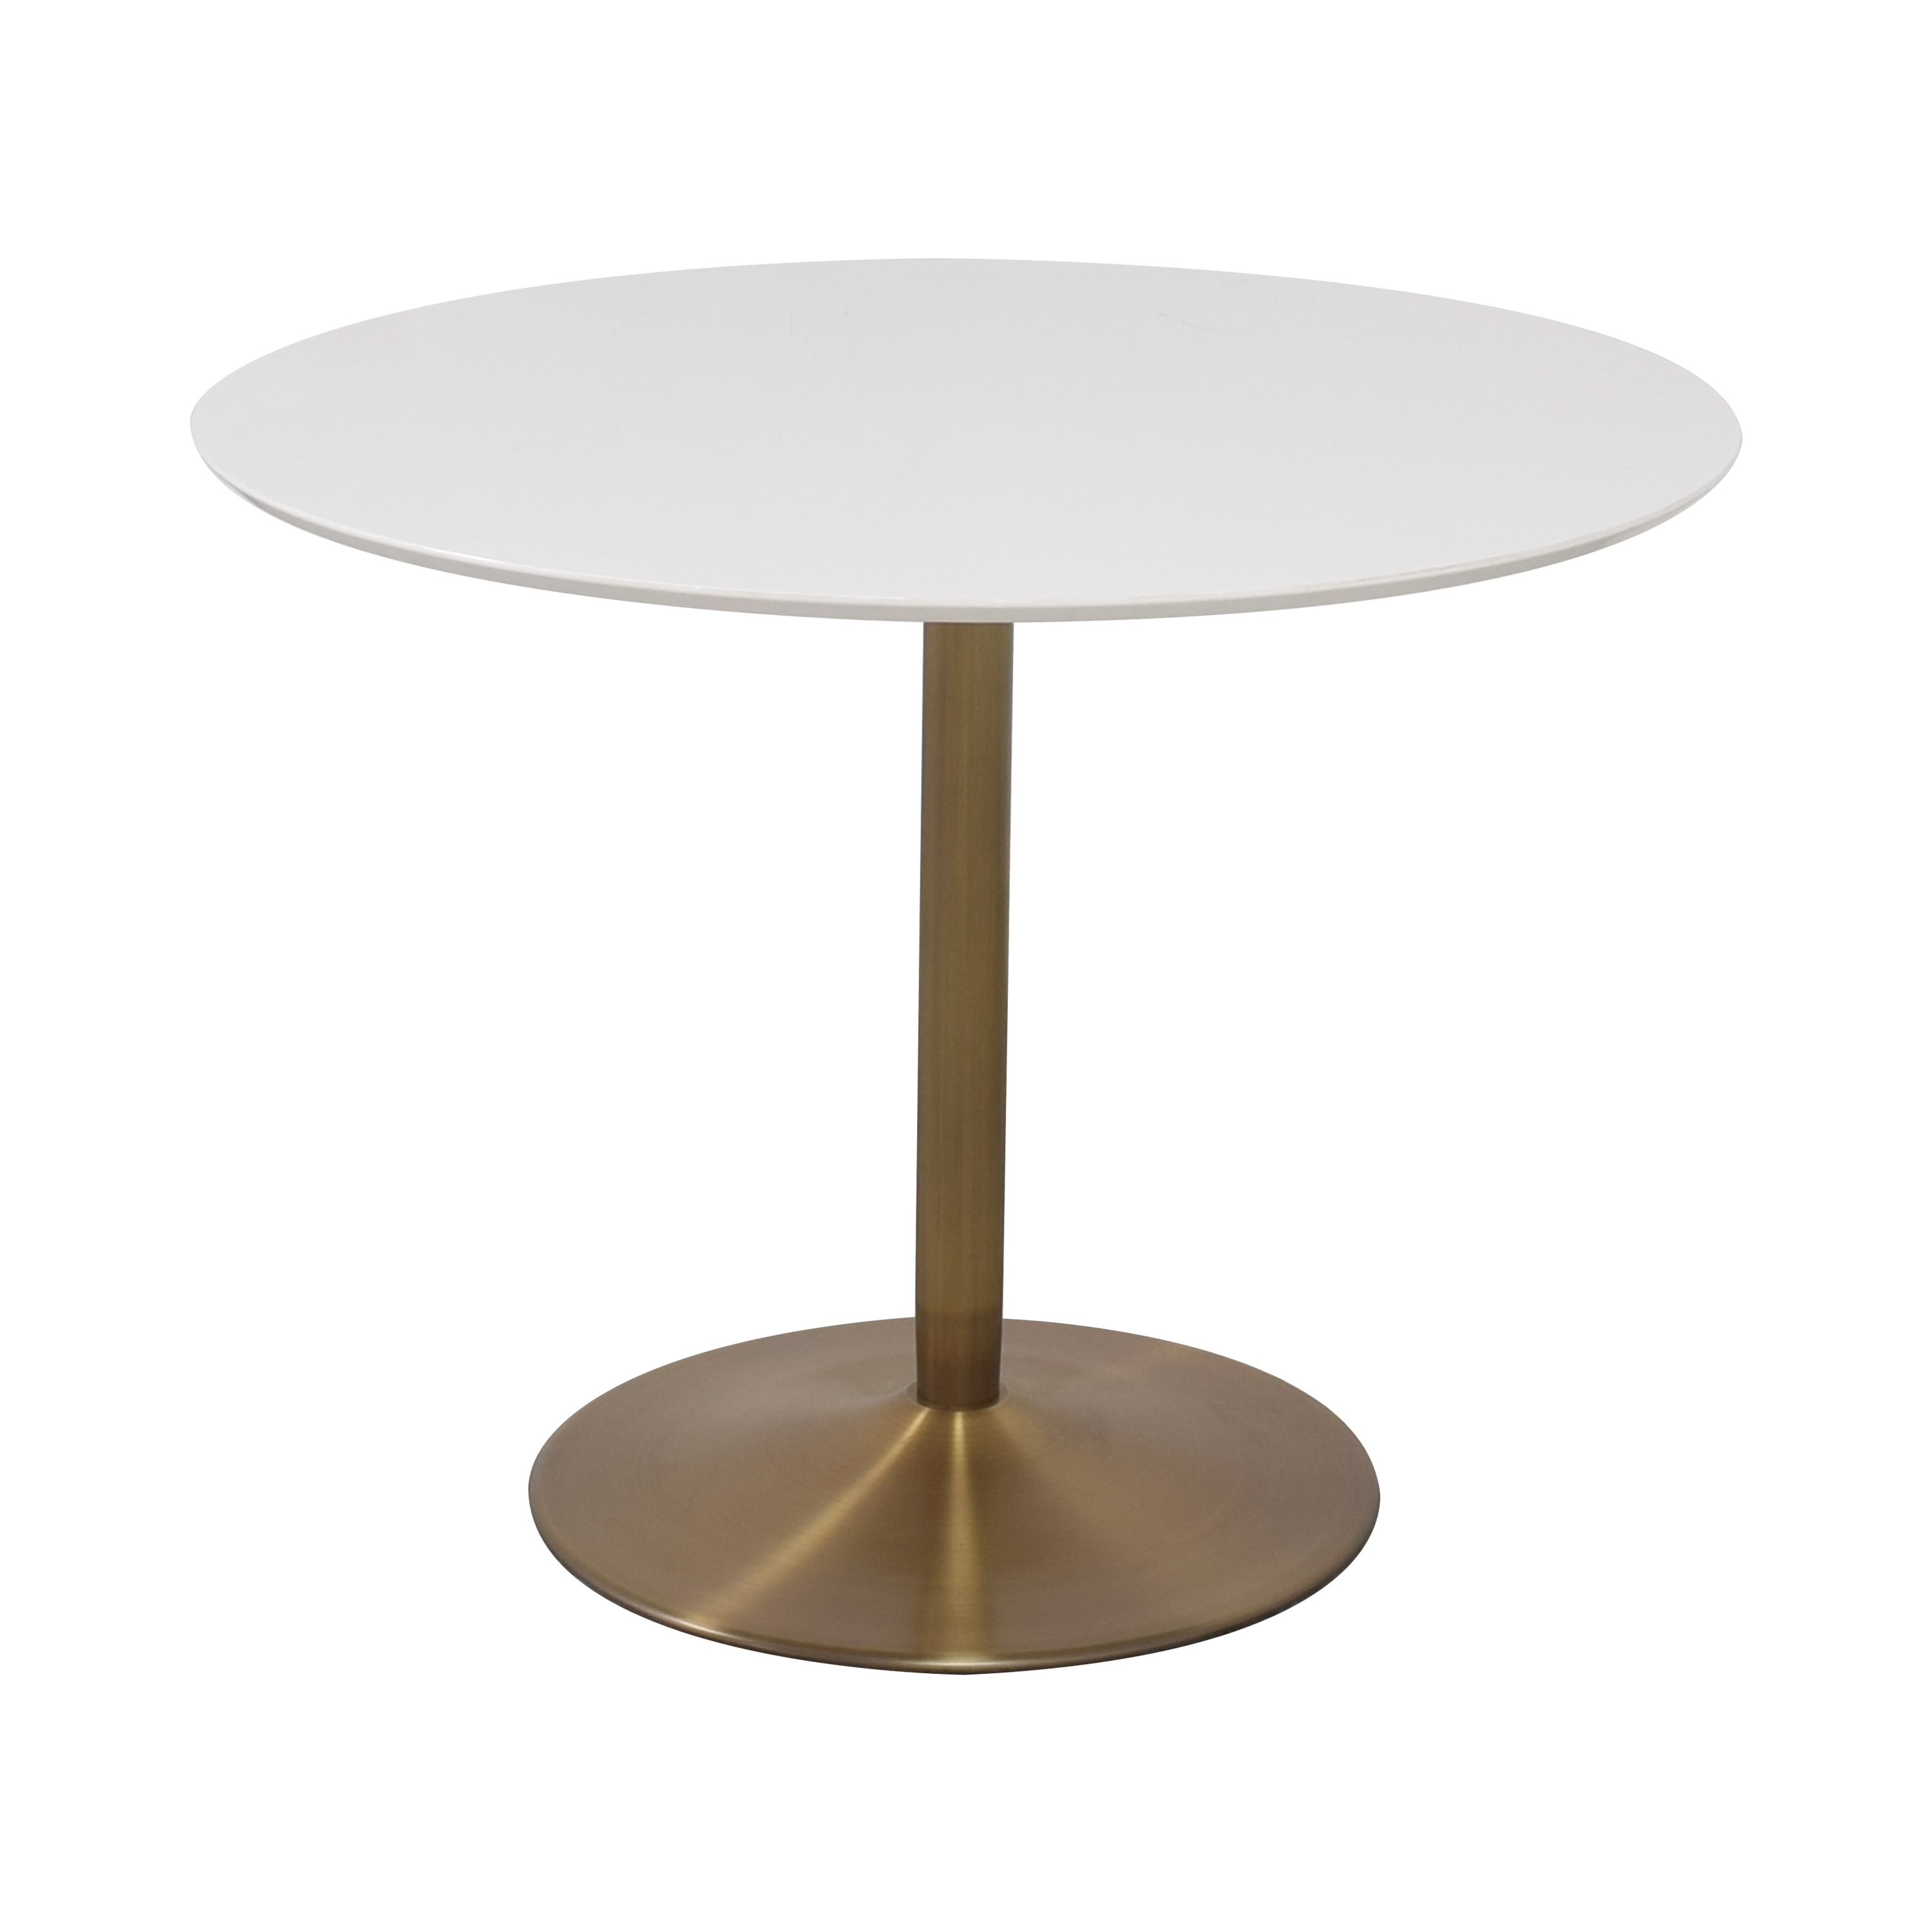 CB2 Odyssey Dining Table / Tables